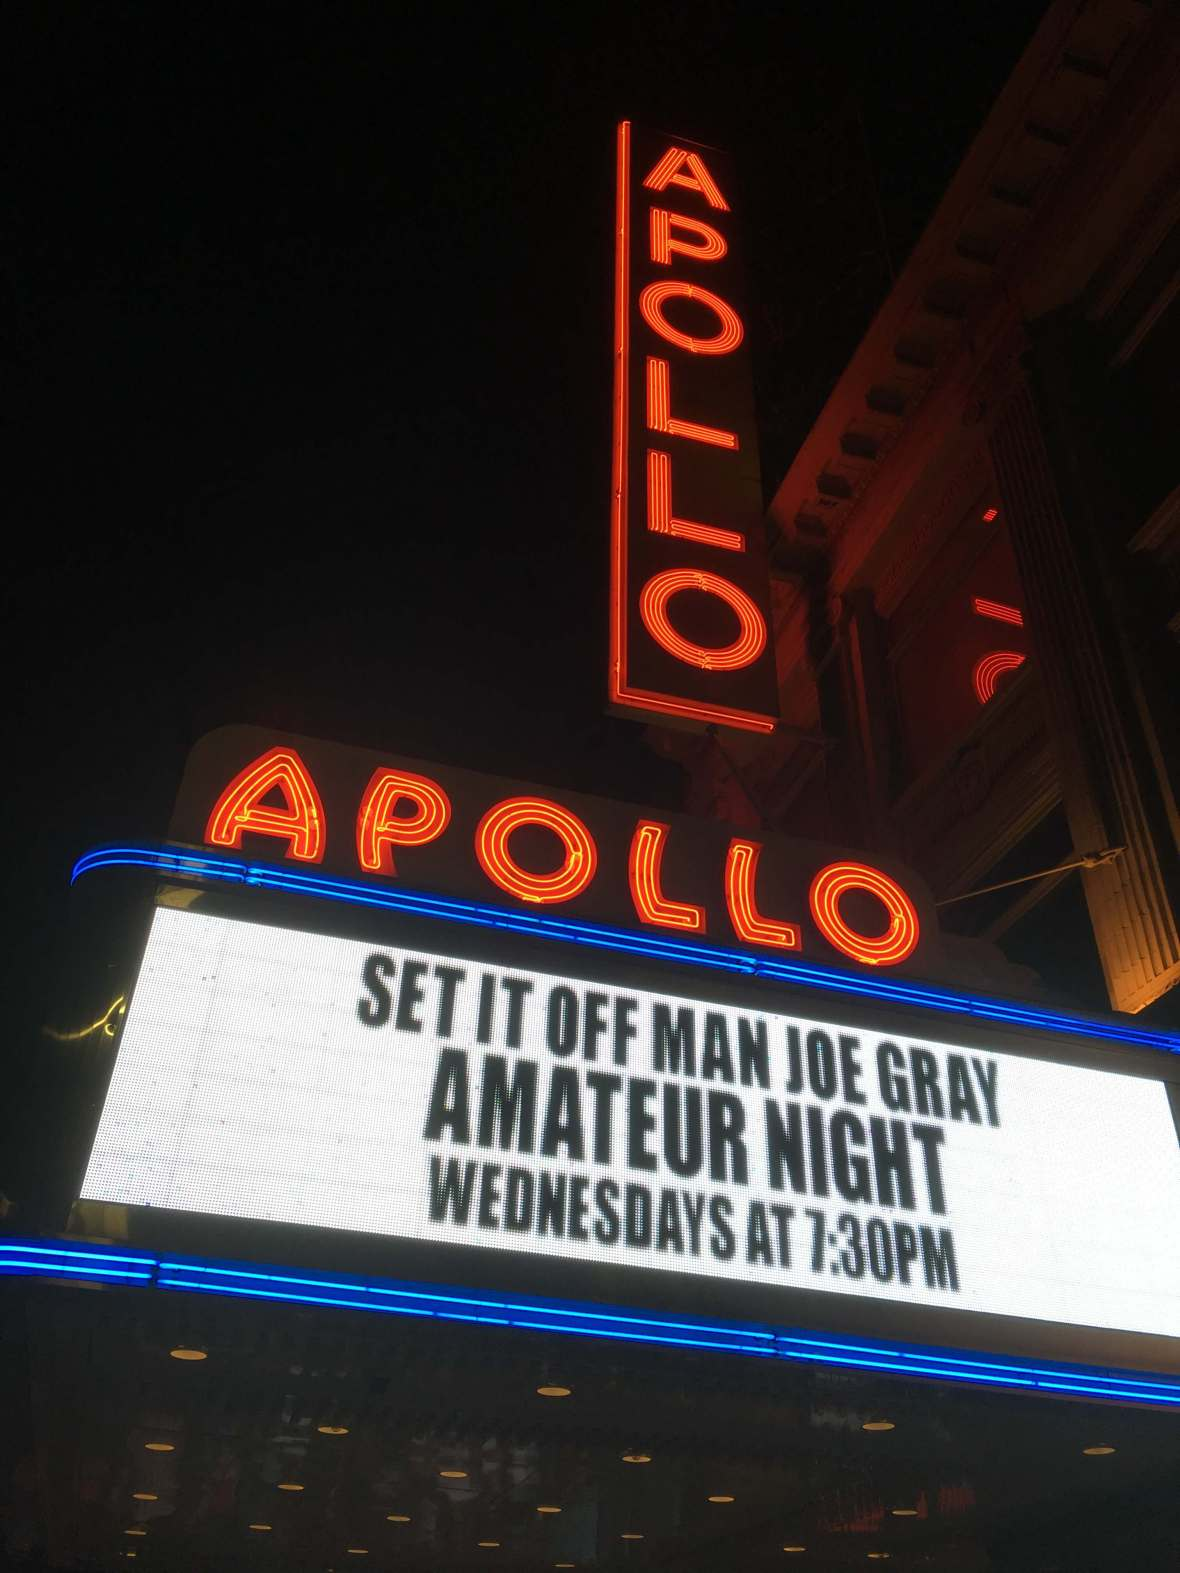 The Apollo Theater in Harlem, New York City